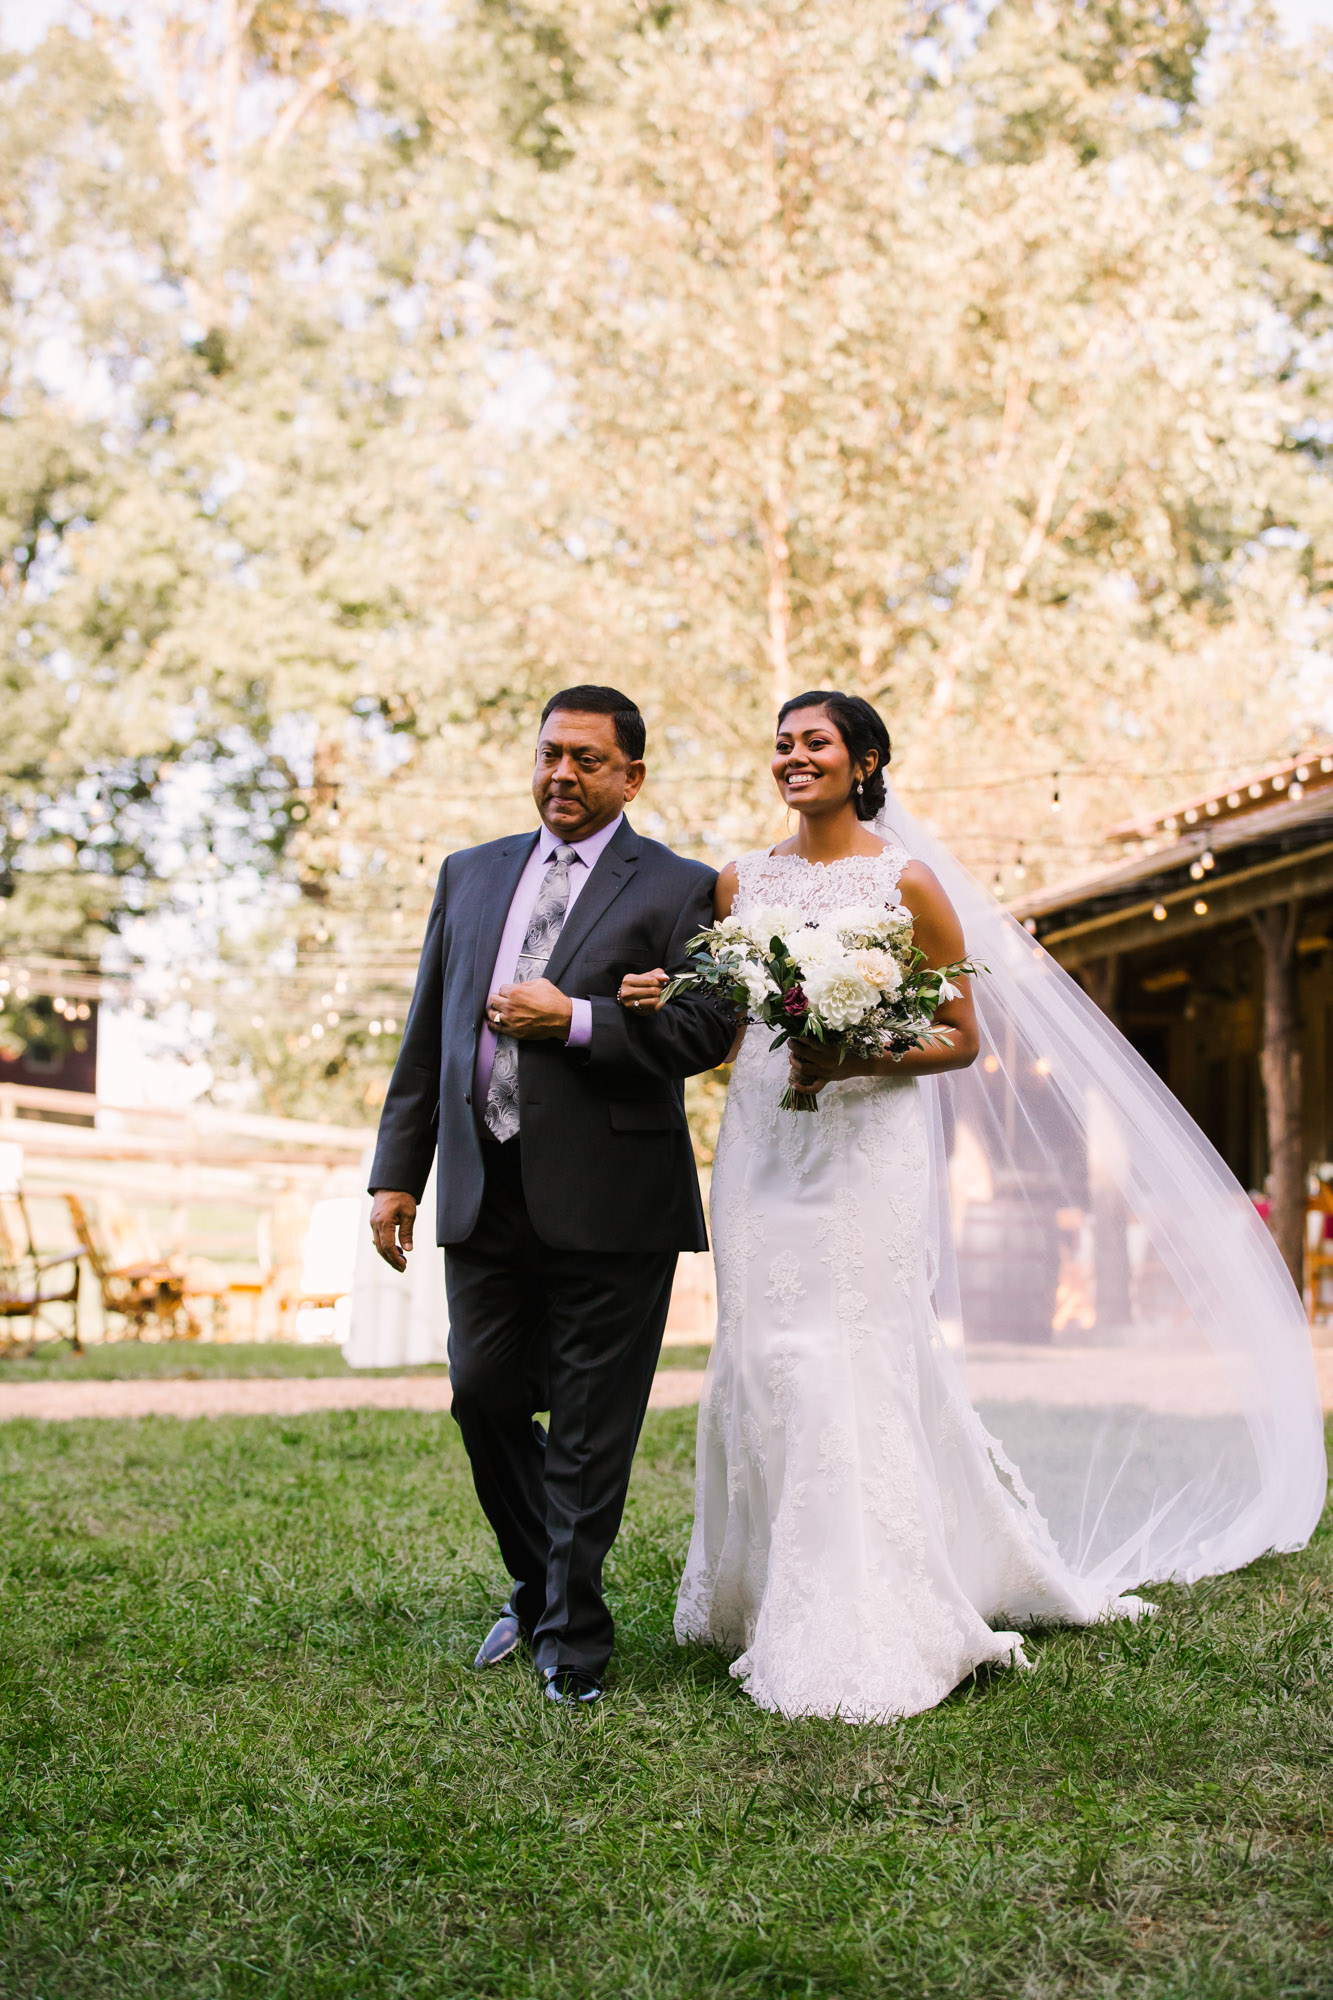 Waynesville NC Wedding Photography | Bride Being Escorted by her Father